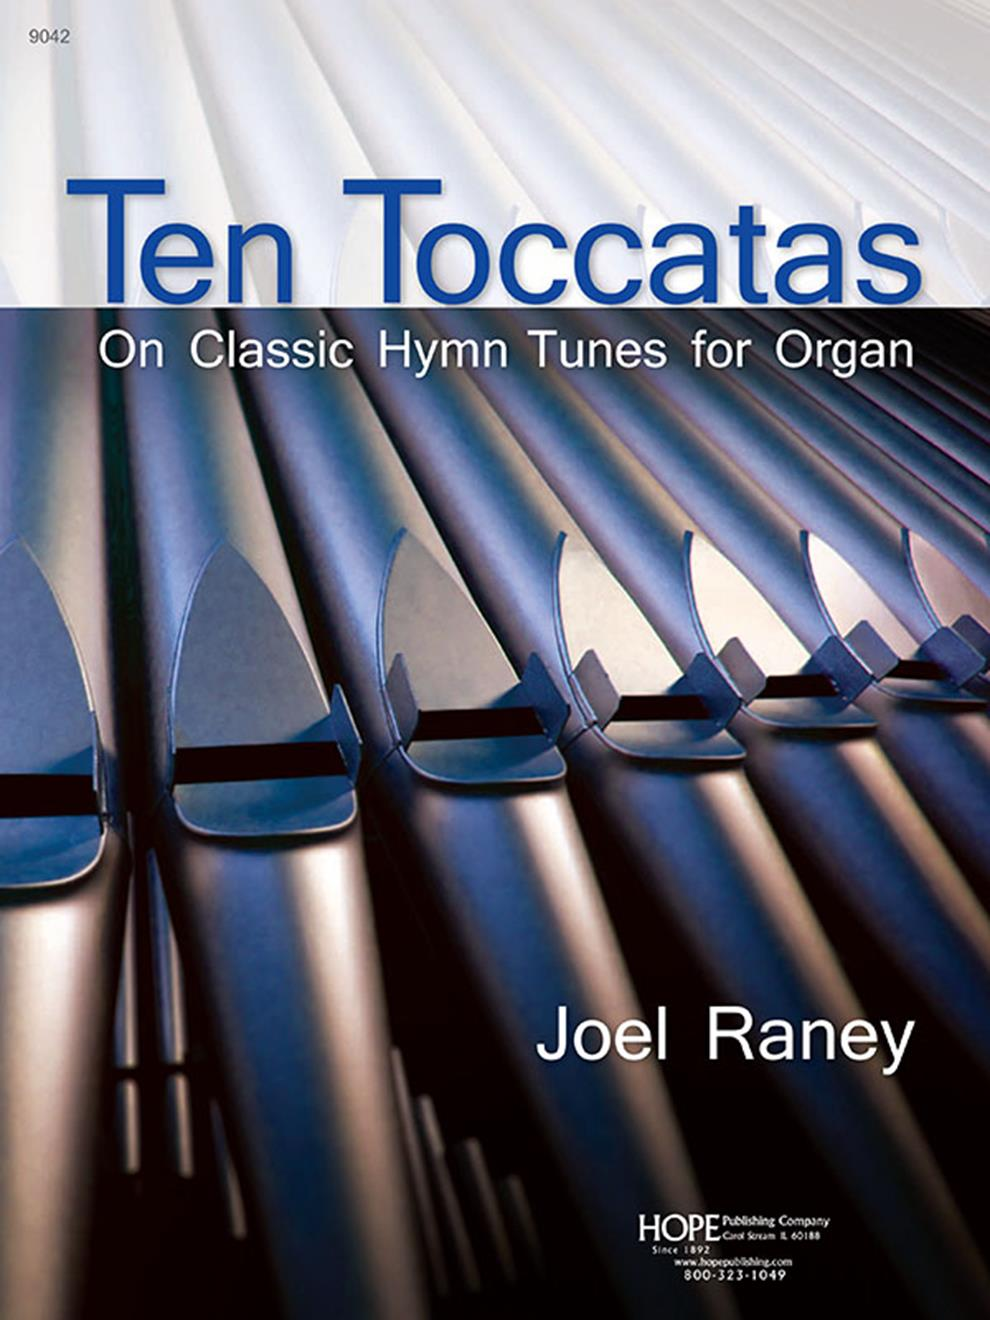 10 Toccatas On Classic Hymn Tunes for Organ - collection Cover Image